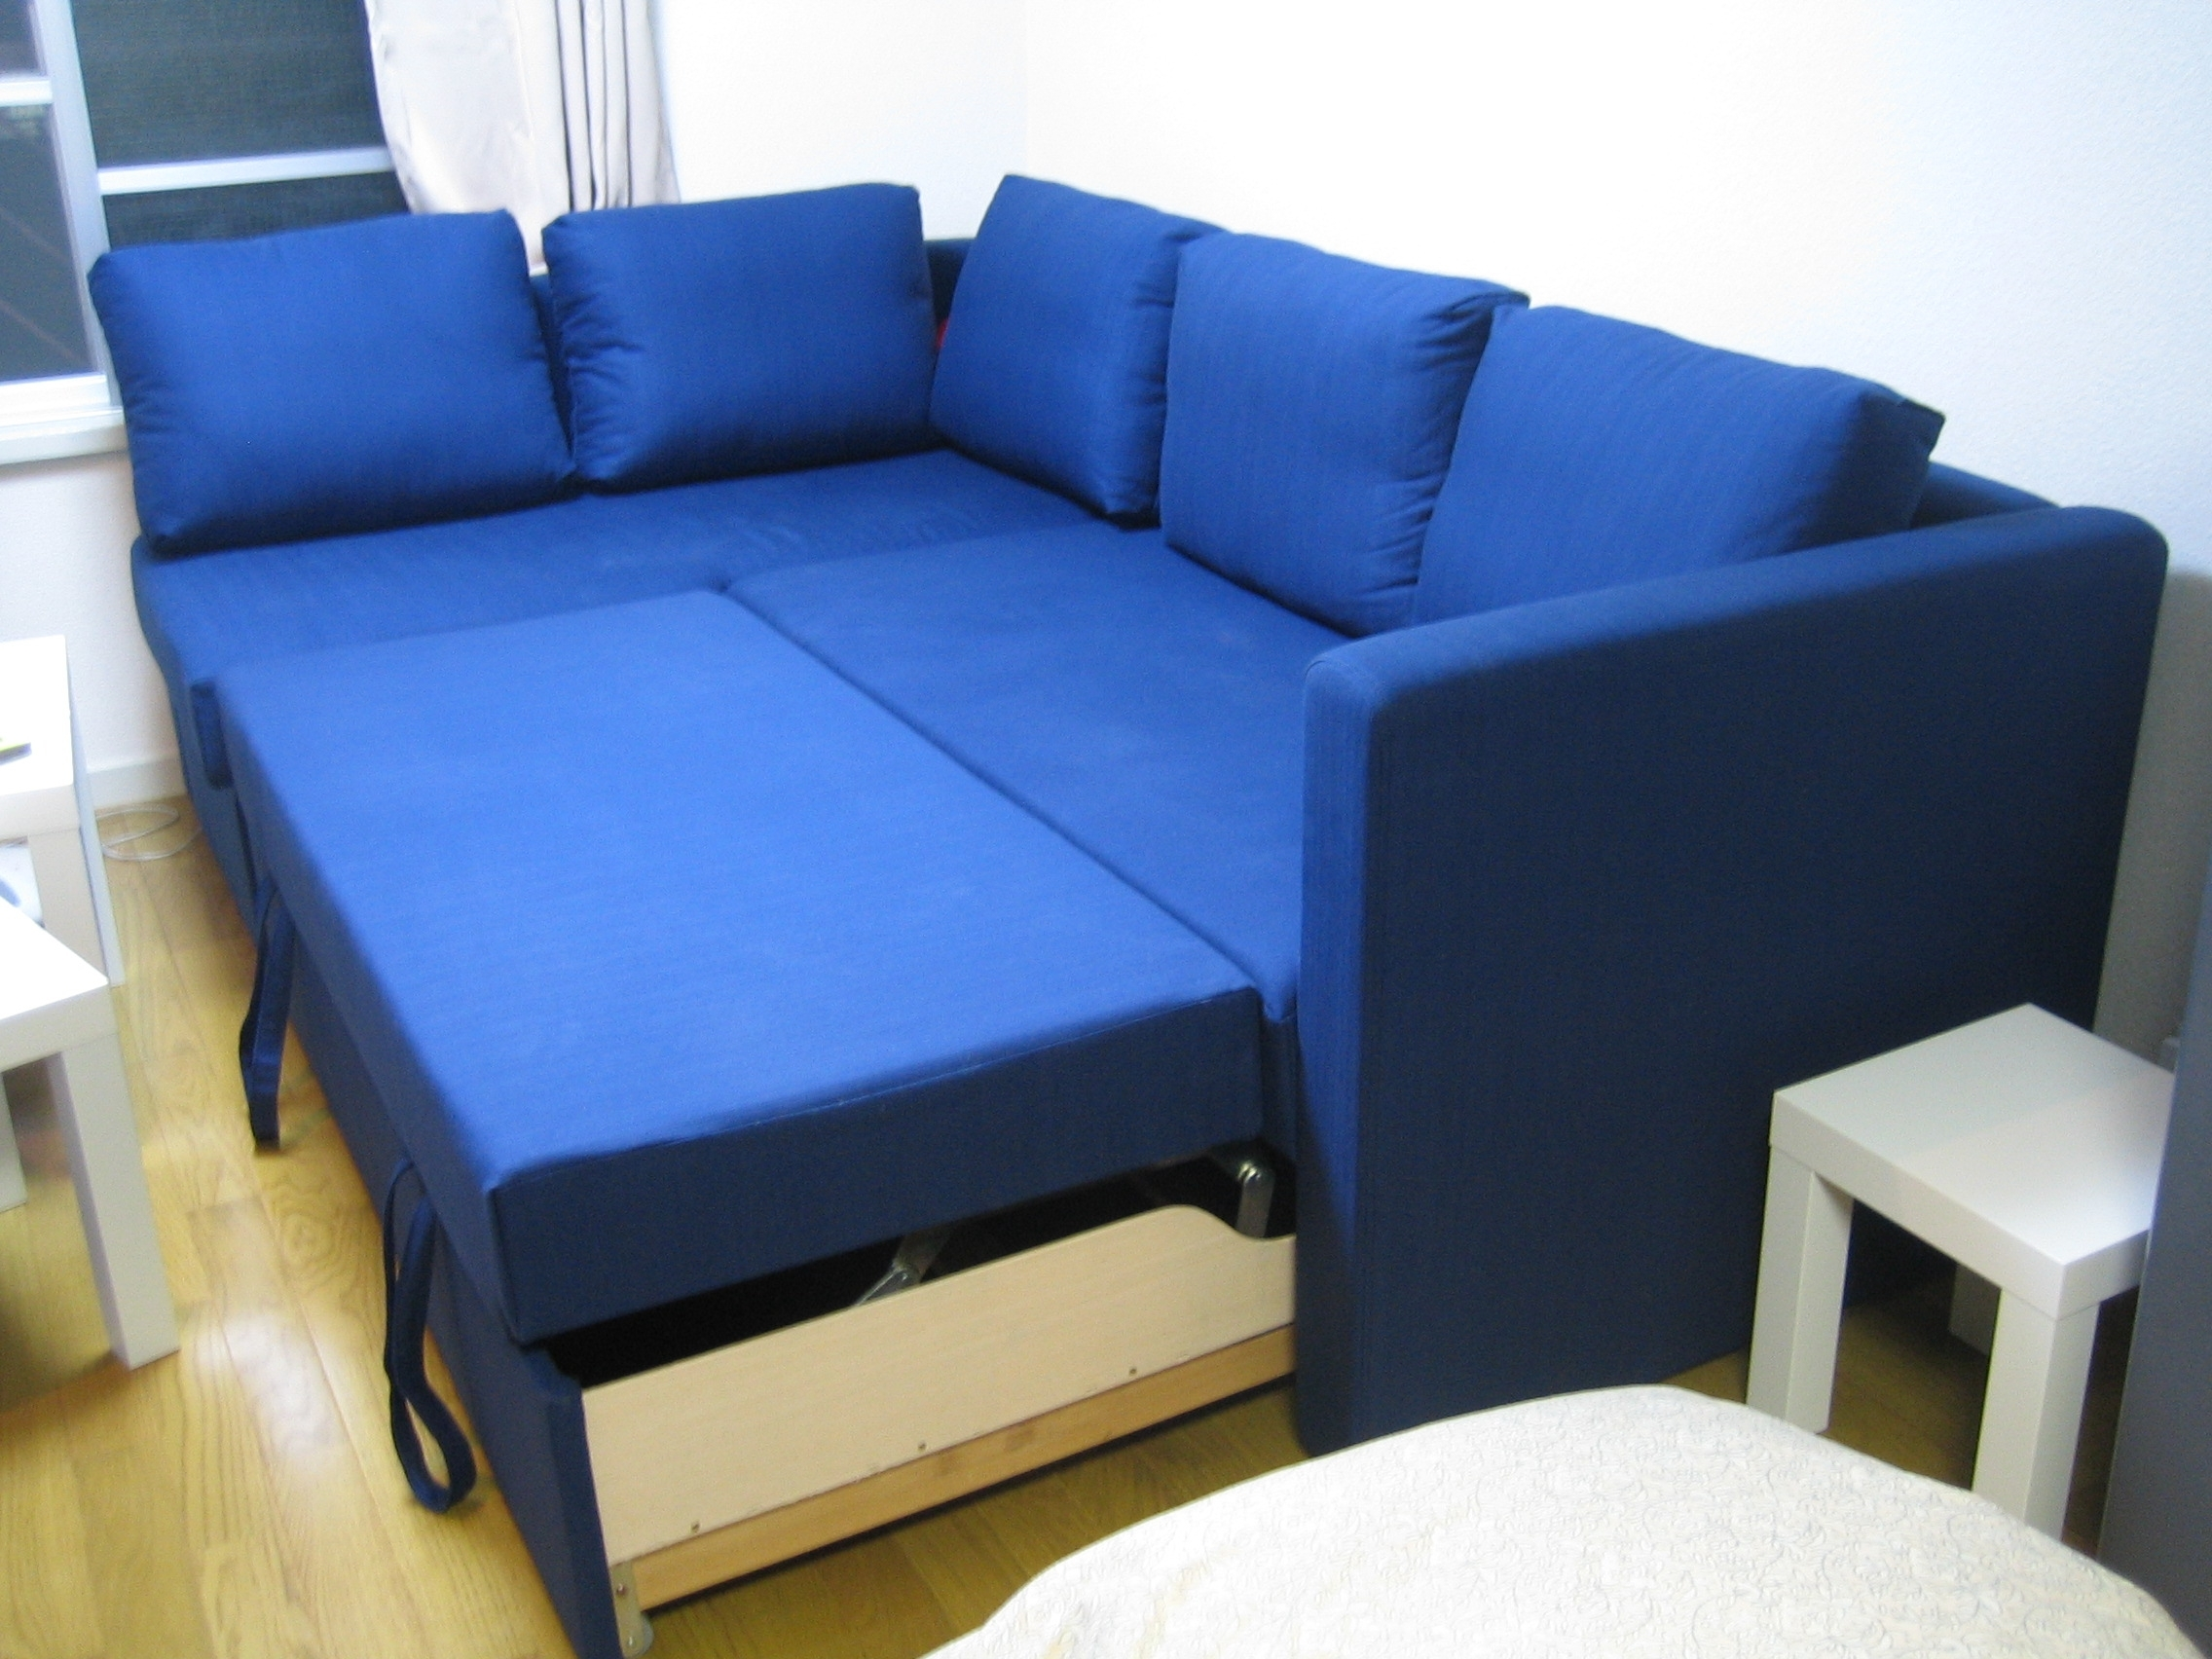 Beautiful Sectional Sofa Bed Ikea 28 For Living Room Sofa Ideas With In Ikea Sectional Sofa Beds (View 7 of 10)